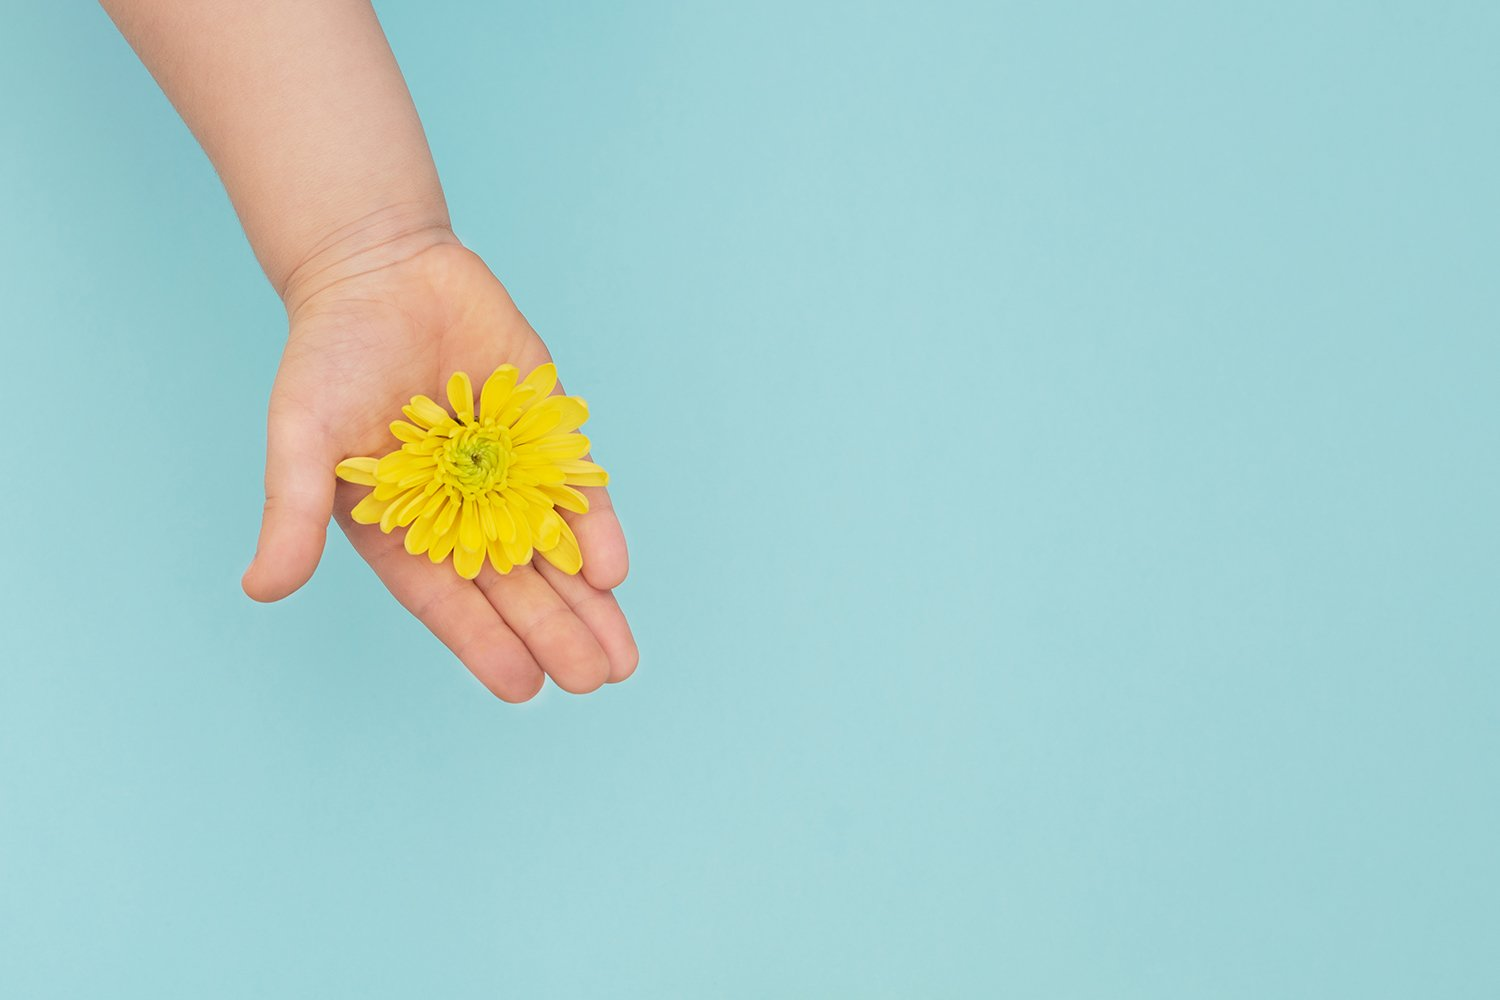 The yellow flower in childs hands on blue background. example image 1